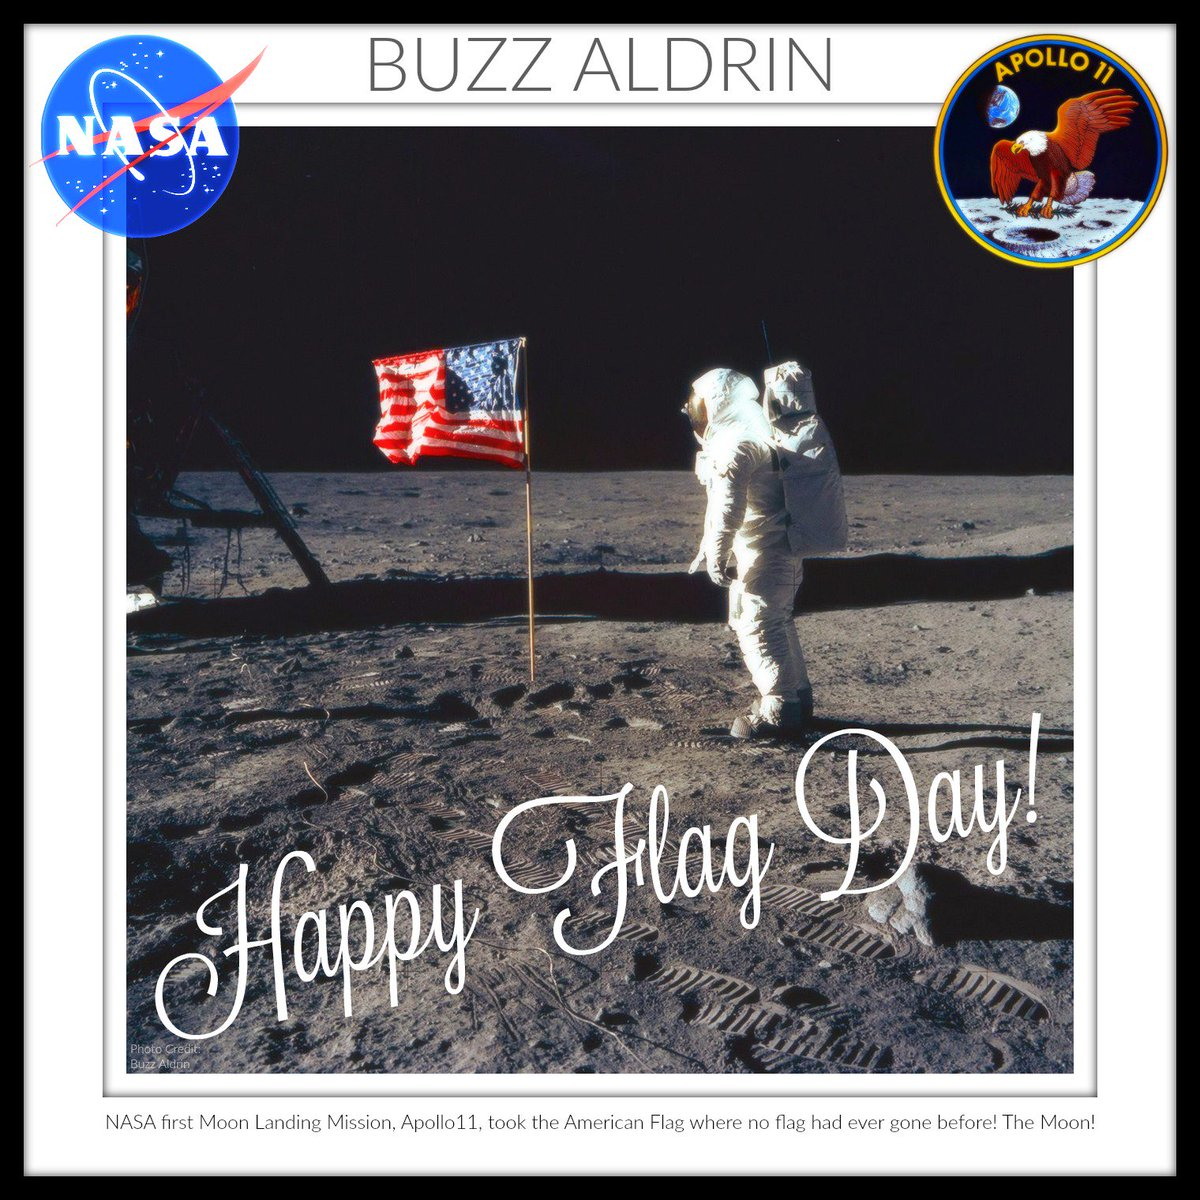 #Apollo11 took the #American #Flag where no flag had ever gone before! https://twitter.com/TheRealBuzz/status/1139747979097595904 … #Happy #FlagDay2019! 👨‍🚀🇺🇸🚀(The 50th #HappyAnniversary of #Apollo11 is on July20th.